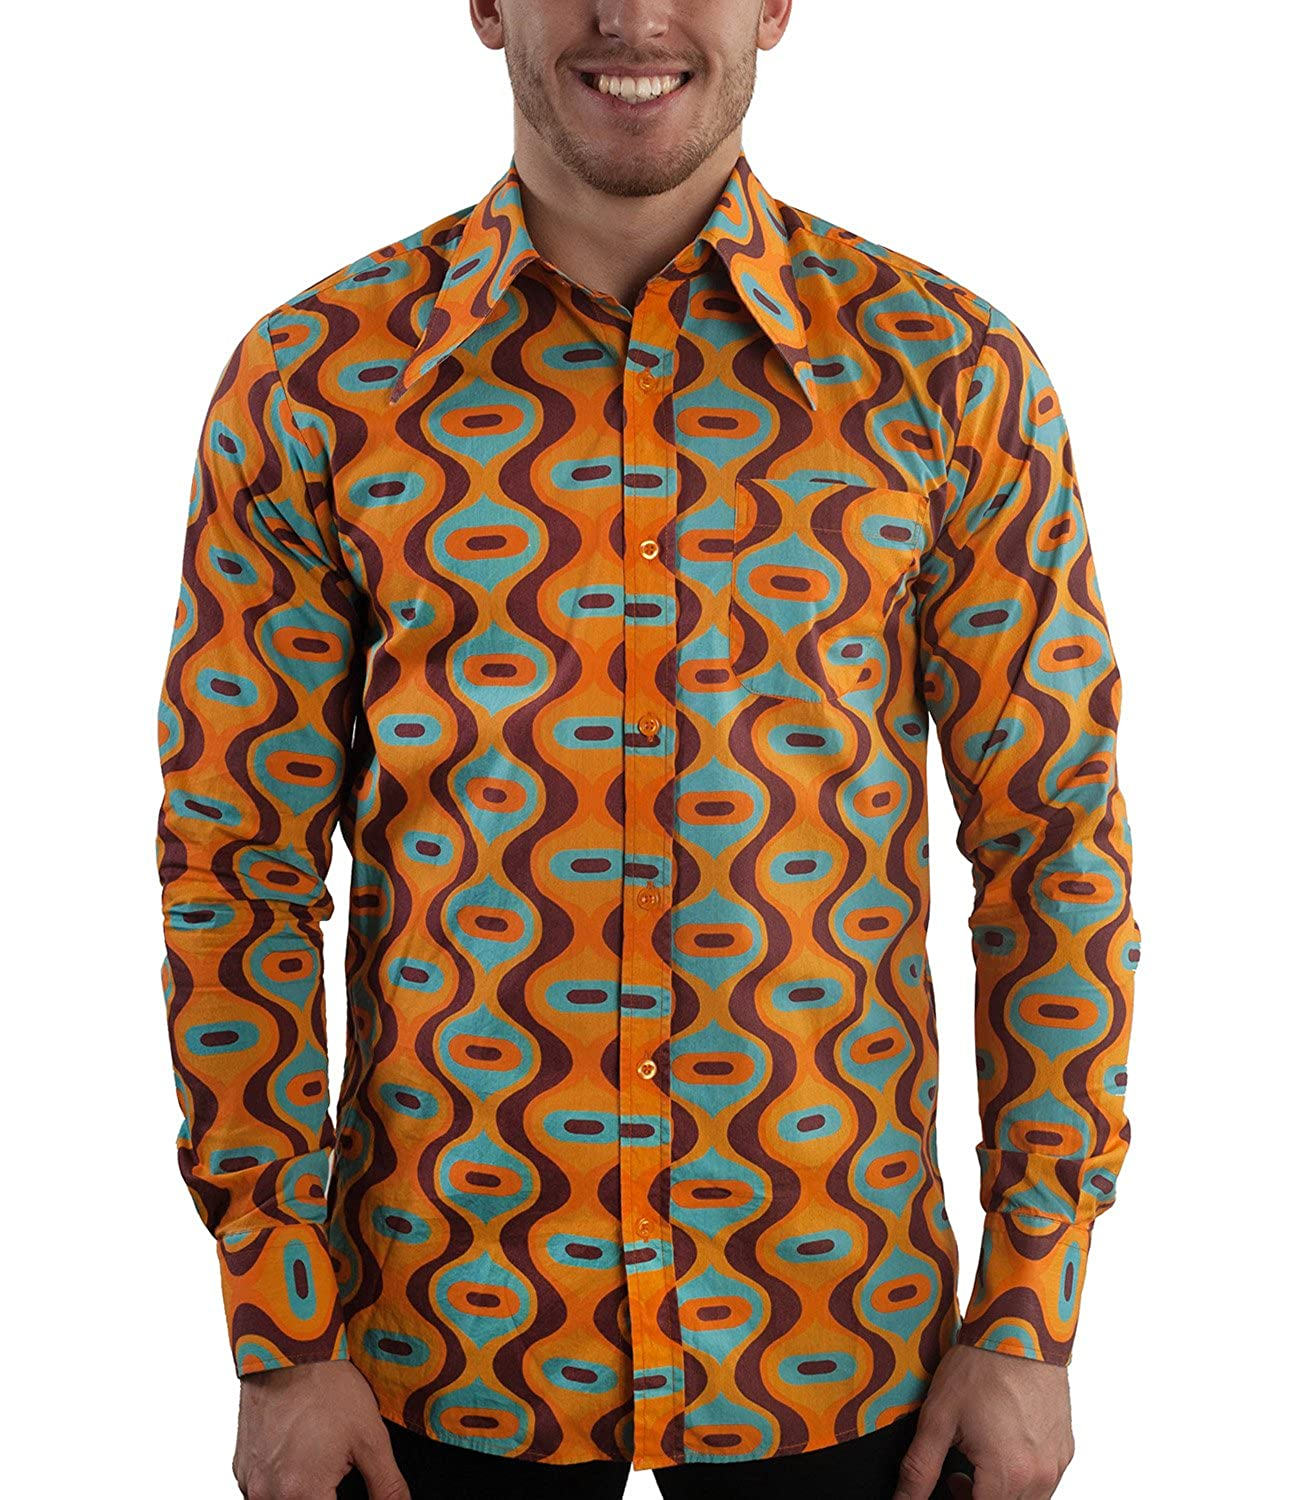 1960s Inspired Fashion: Recreate the Look Retro 70s Design Party Shirt Drops Turquoise £4,142.25 AT vintagedancer.com